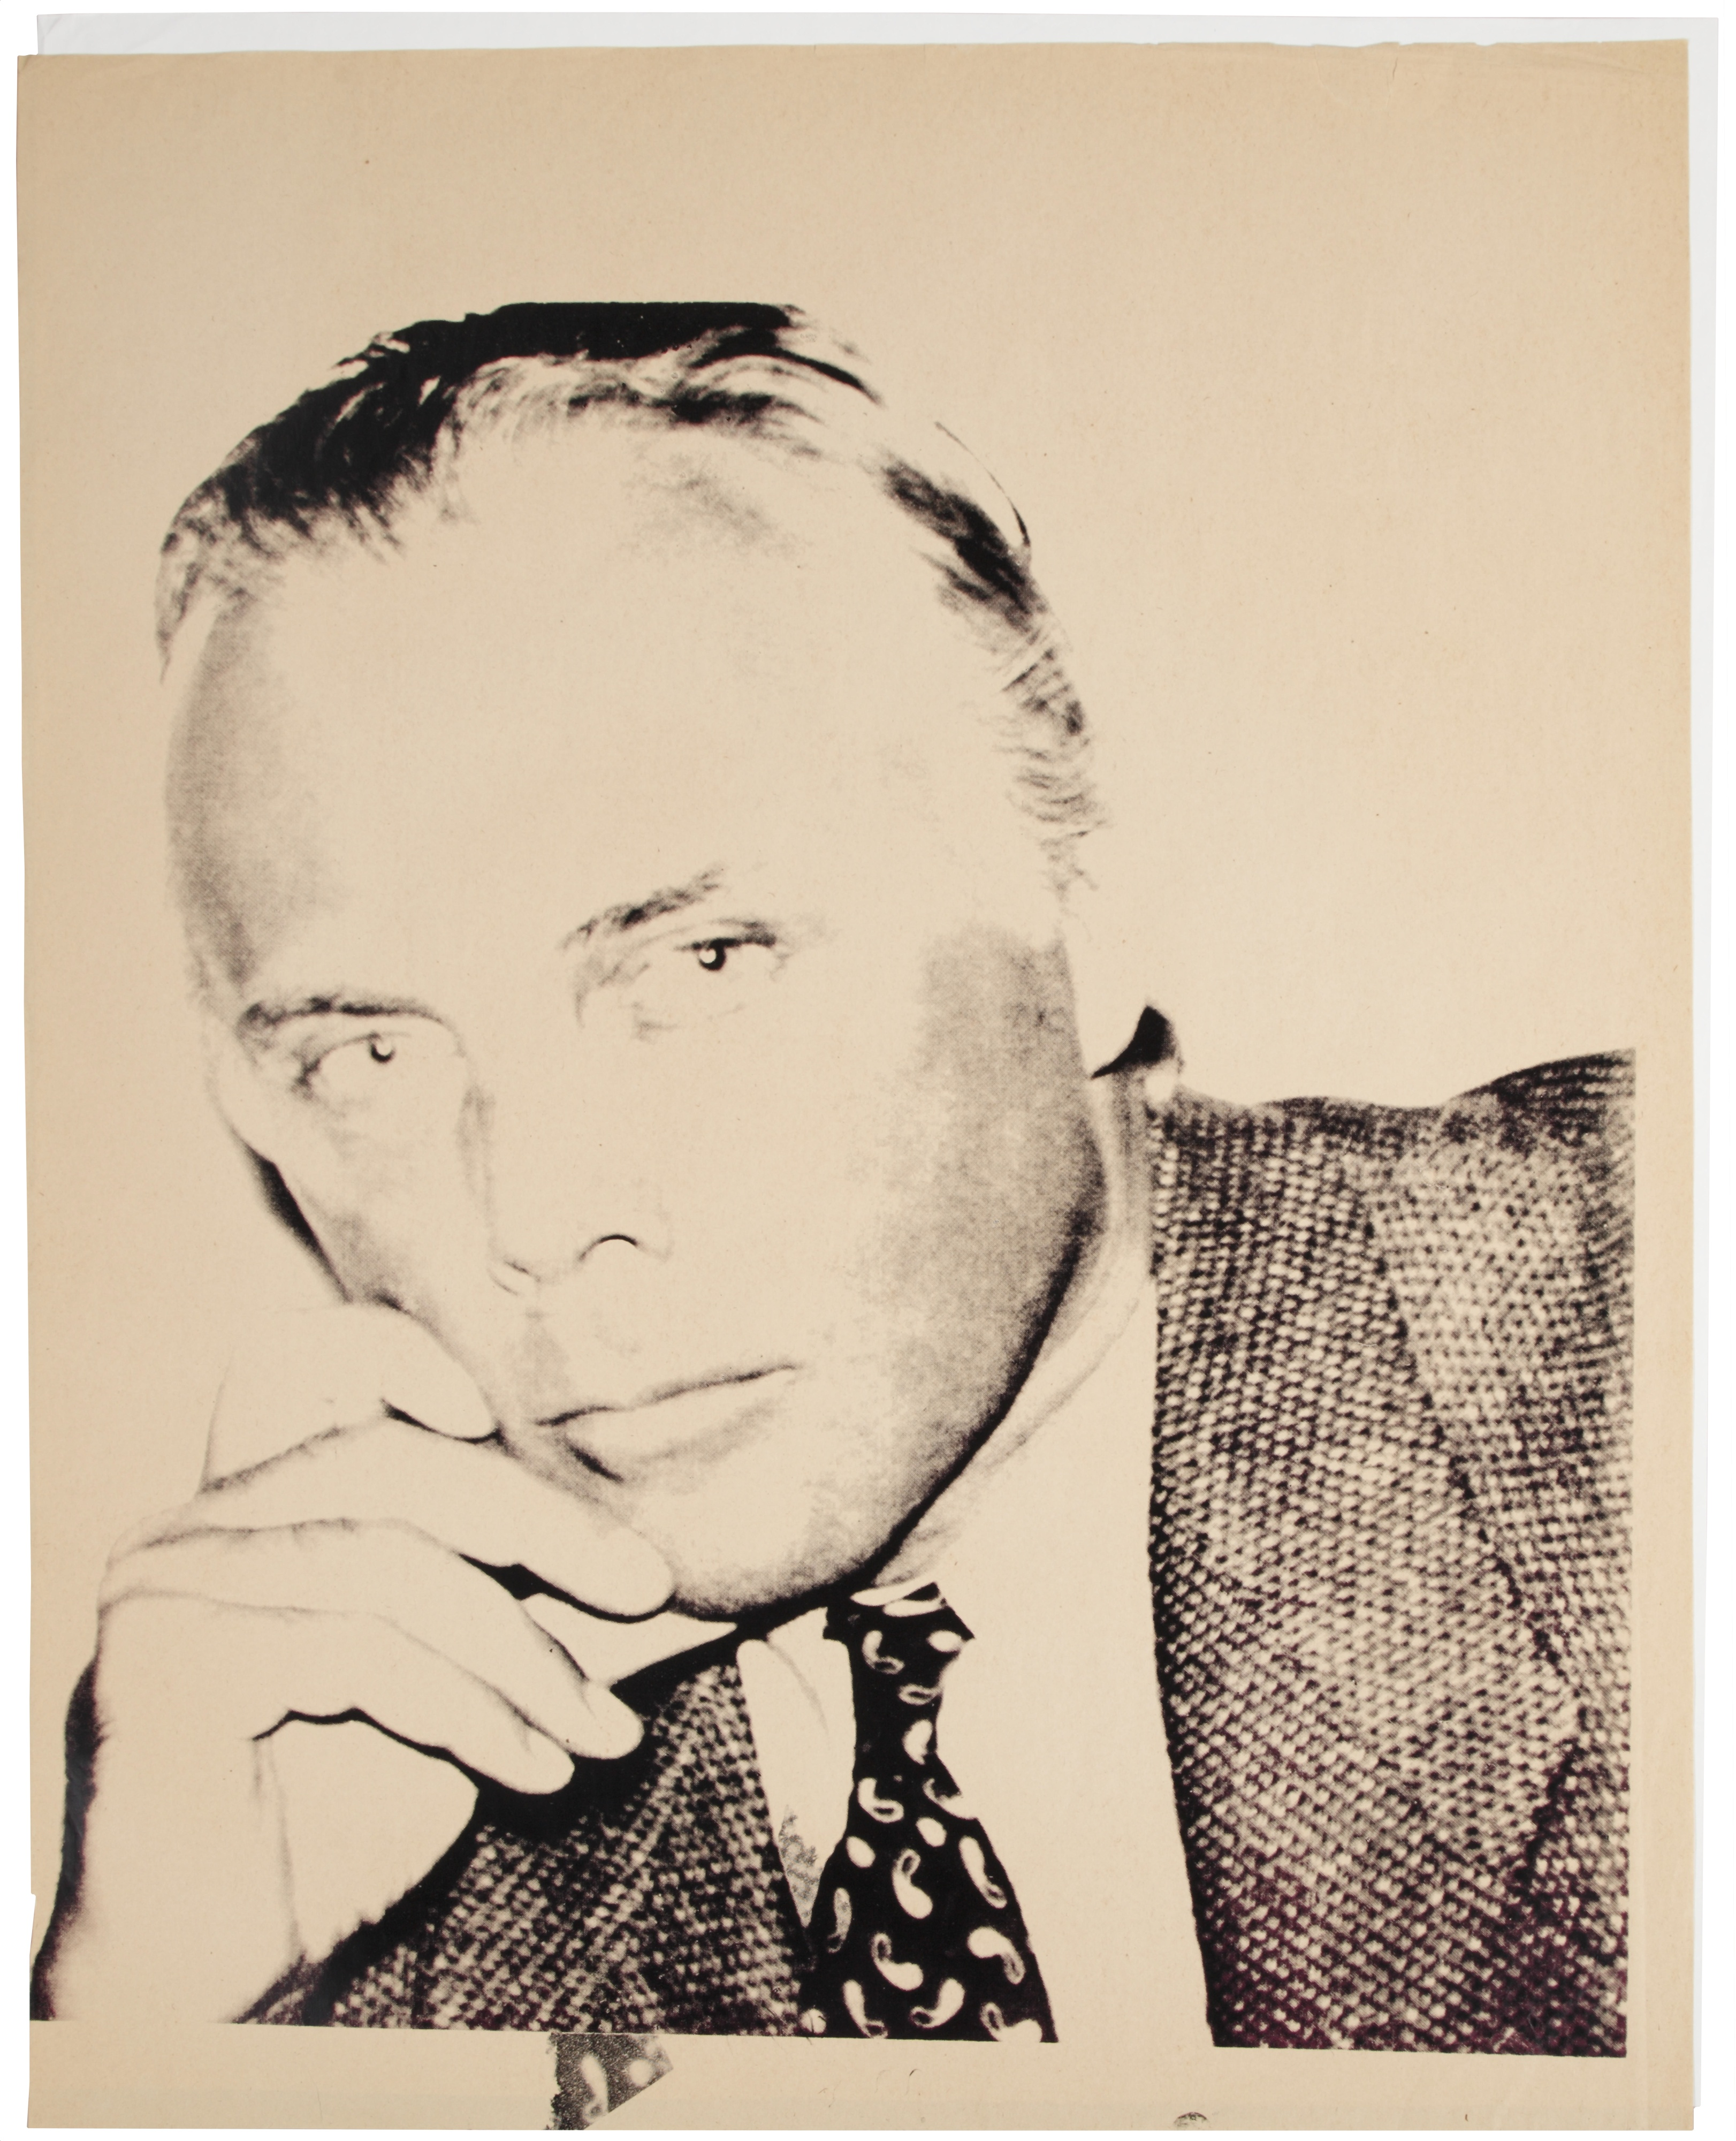 Giorgio Armani, 1981,ink screenprint on